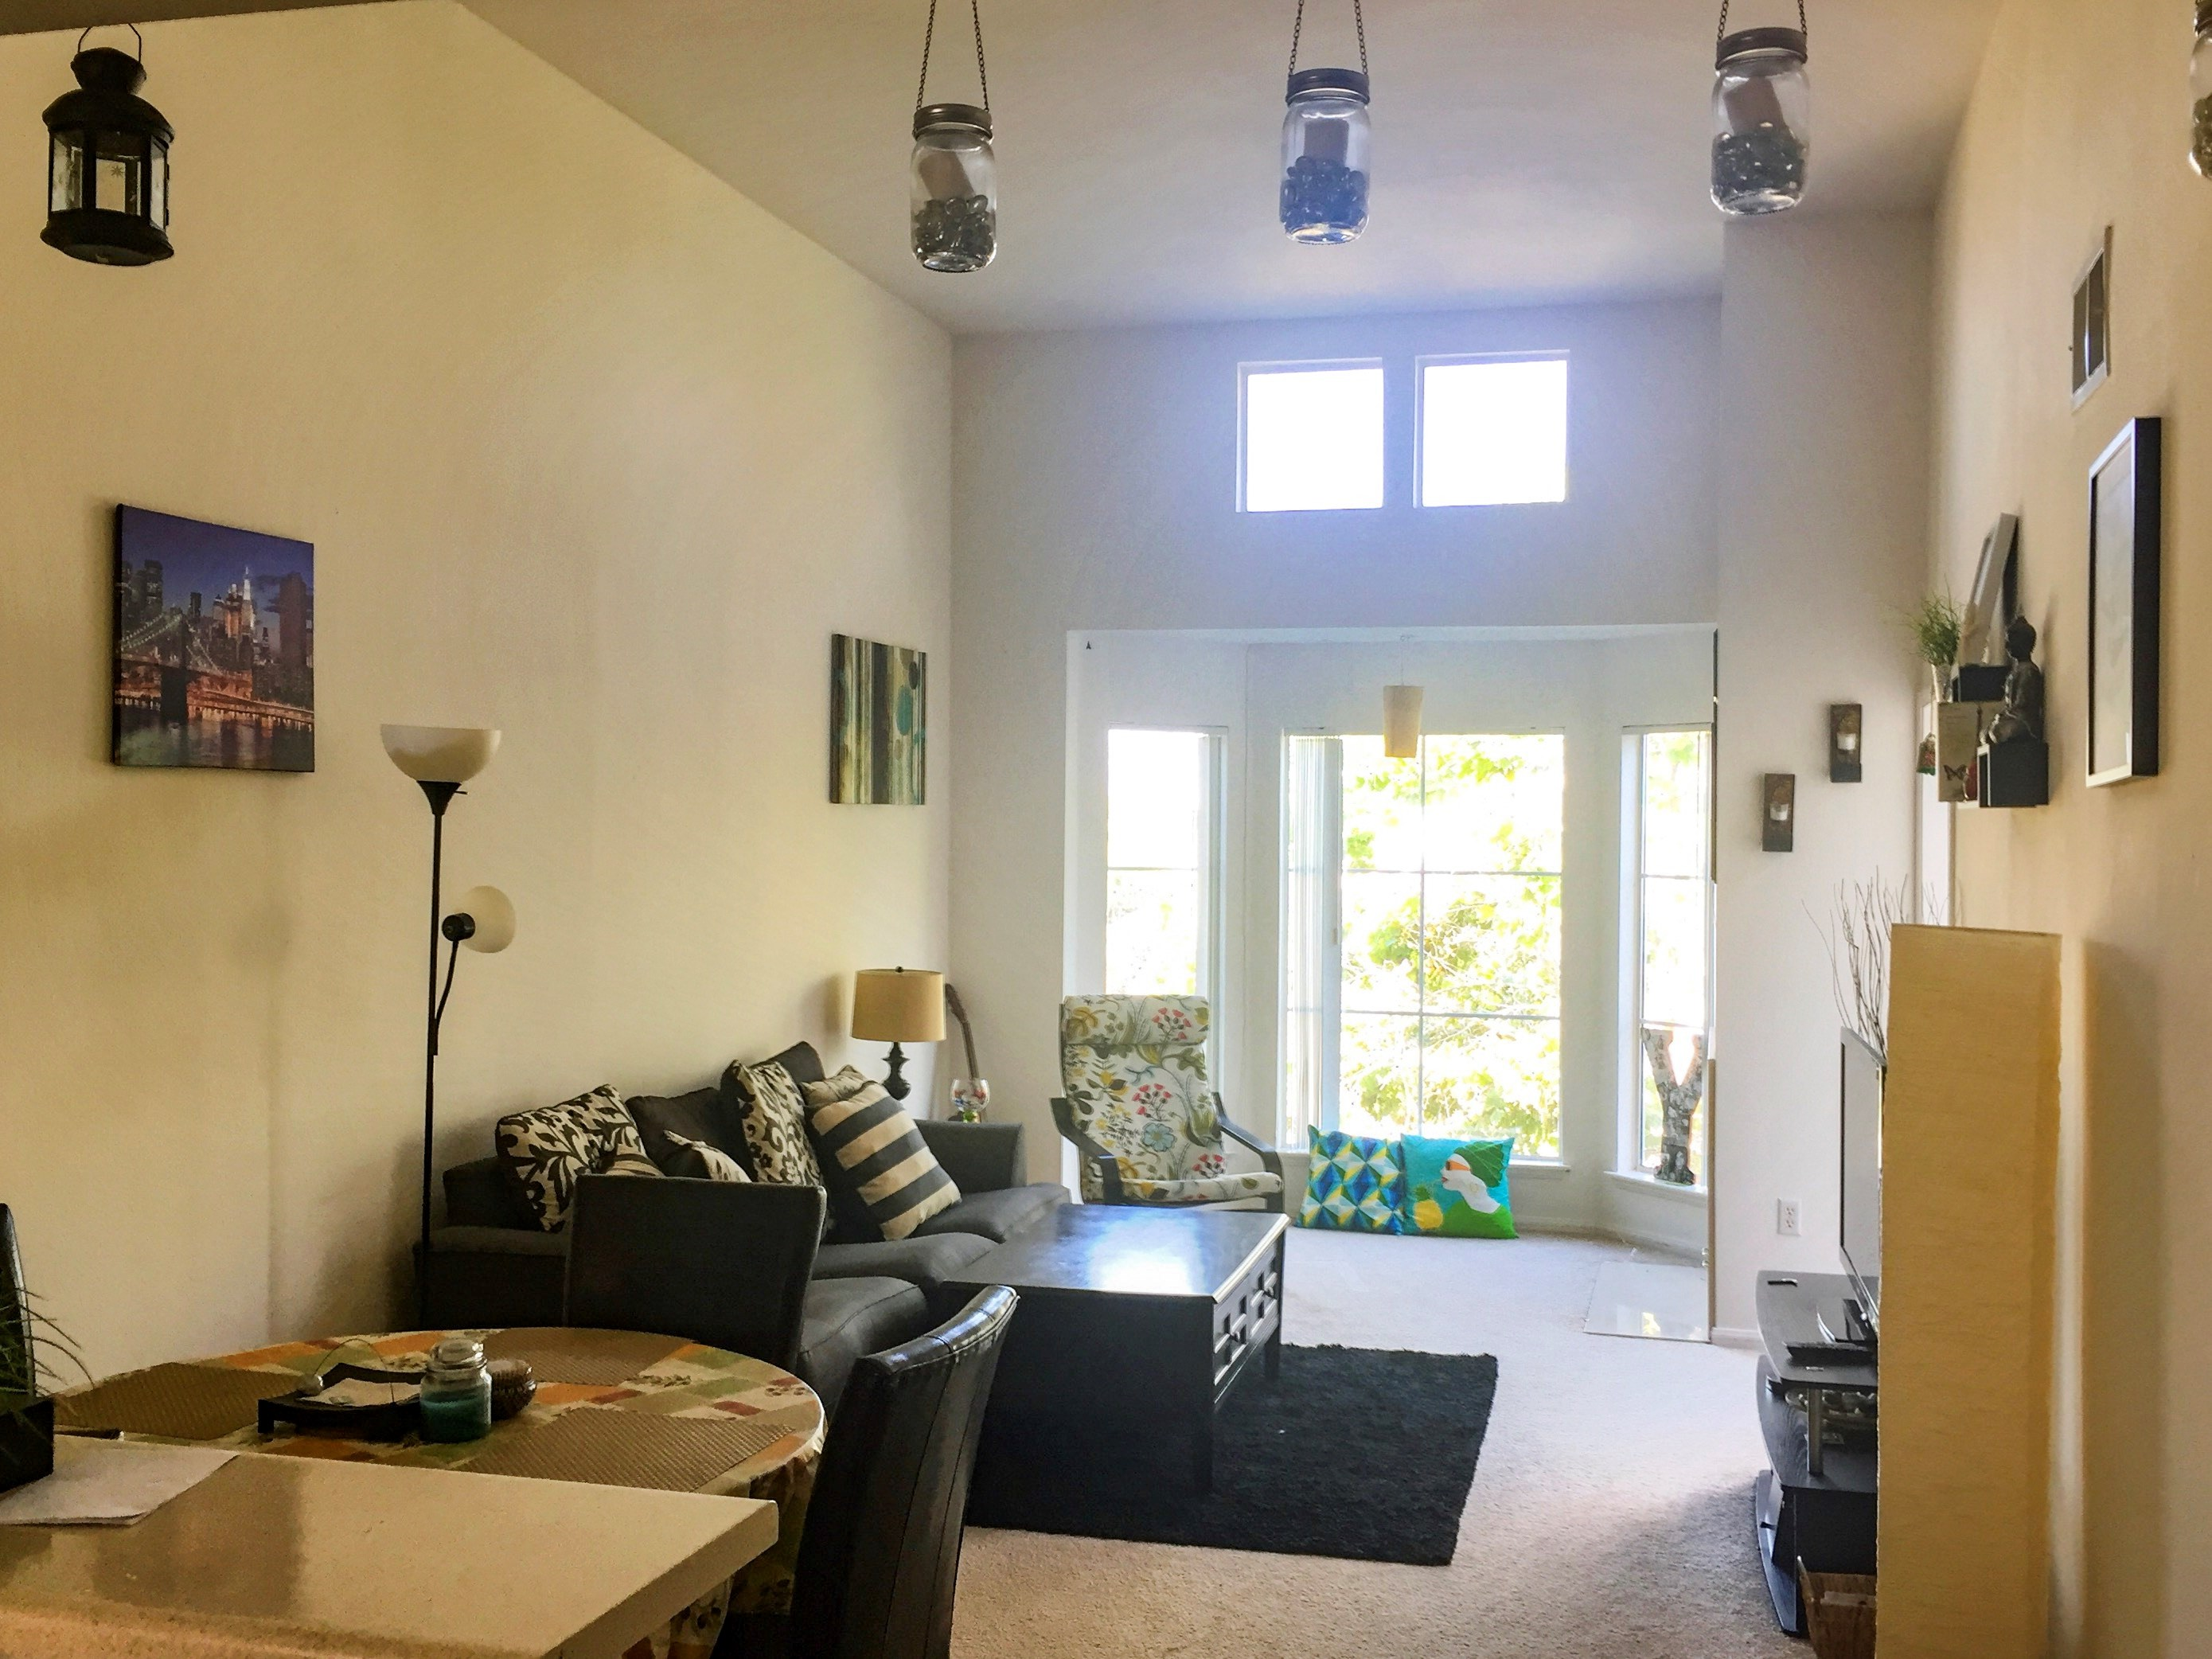 1 bed1 bath with spacious living room vaulted ceilingwalking distance - Living Room Rentals